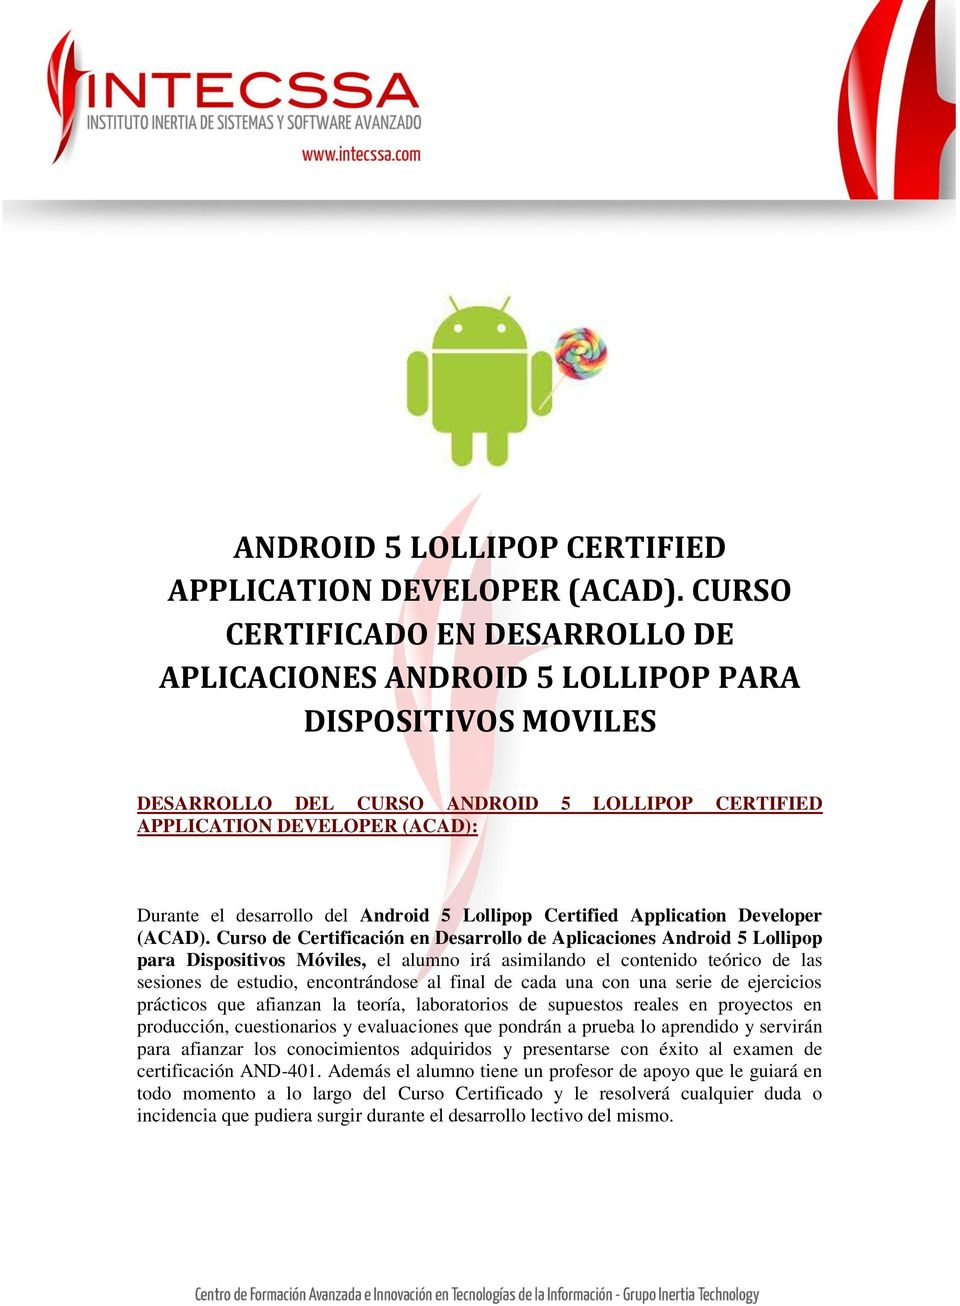 Android 5 Lollipop Certified Application Developer (ACAD).